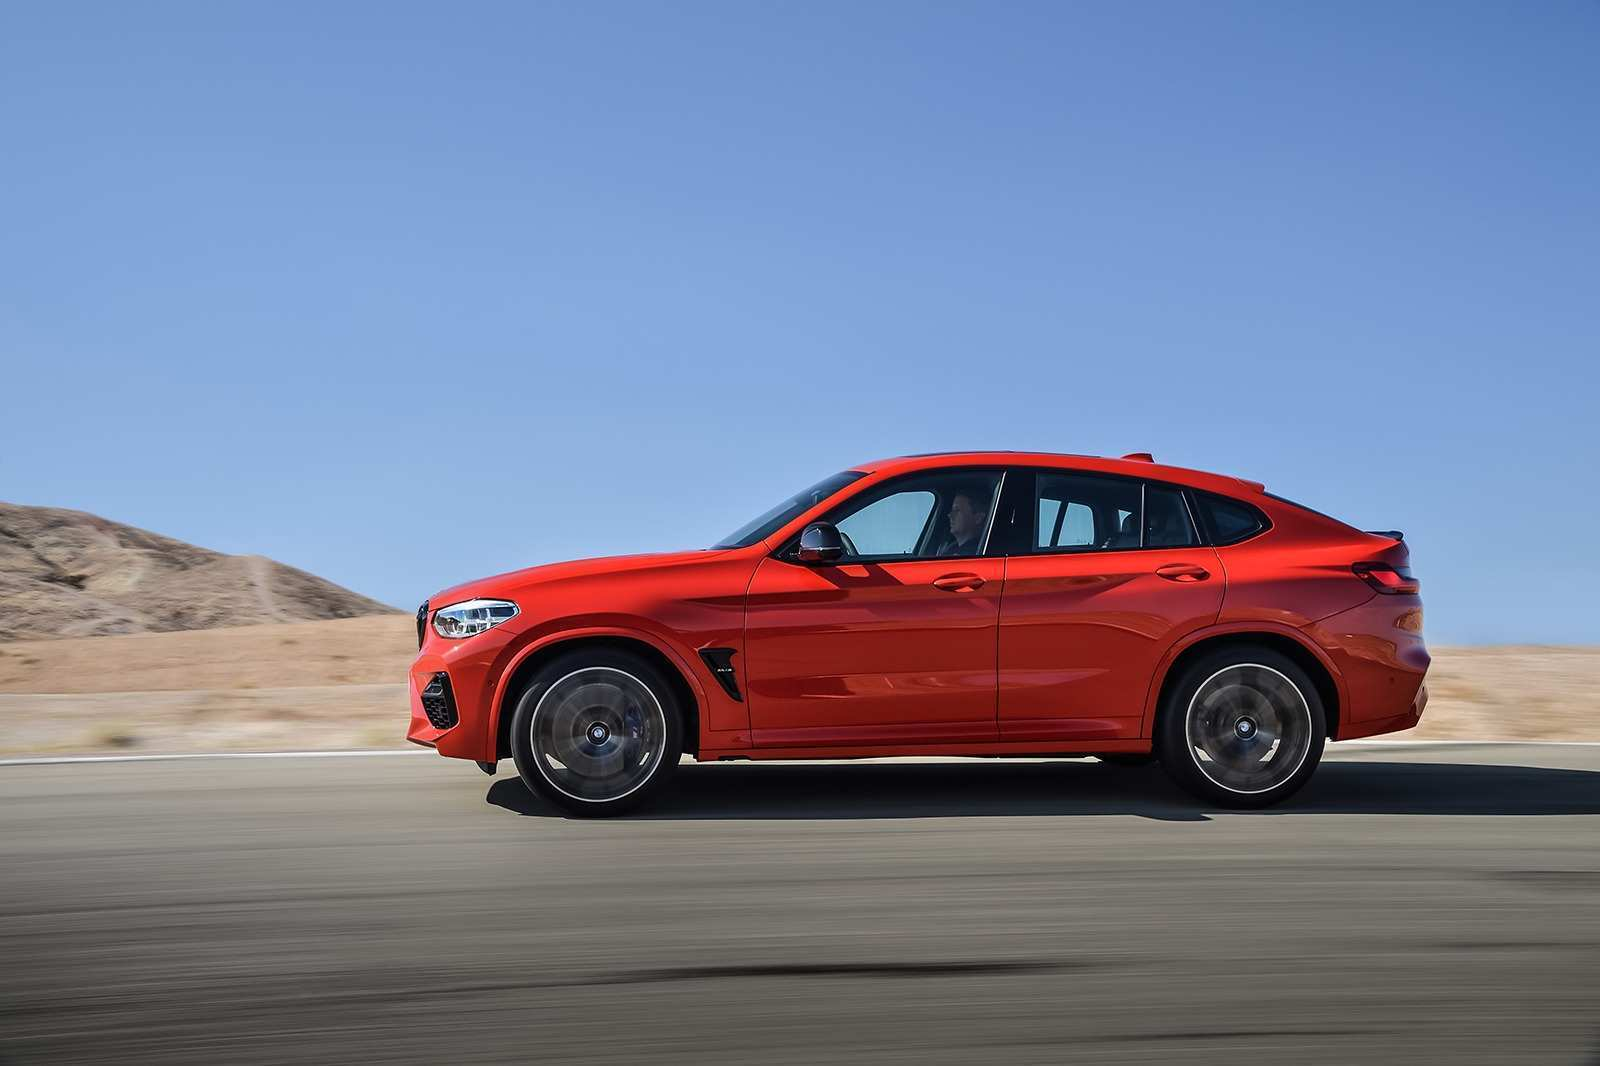 34 All New BMW X4 2020 Exterior